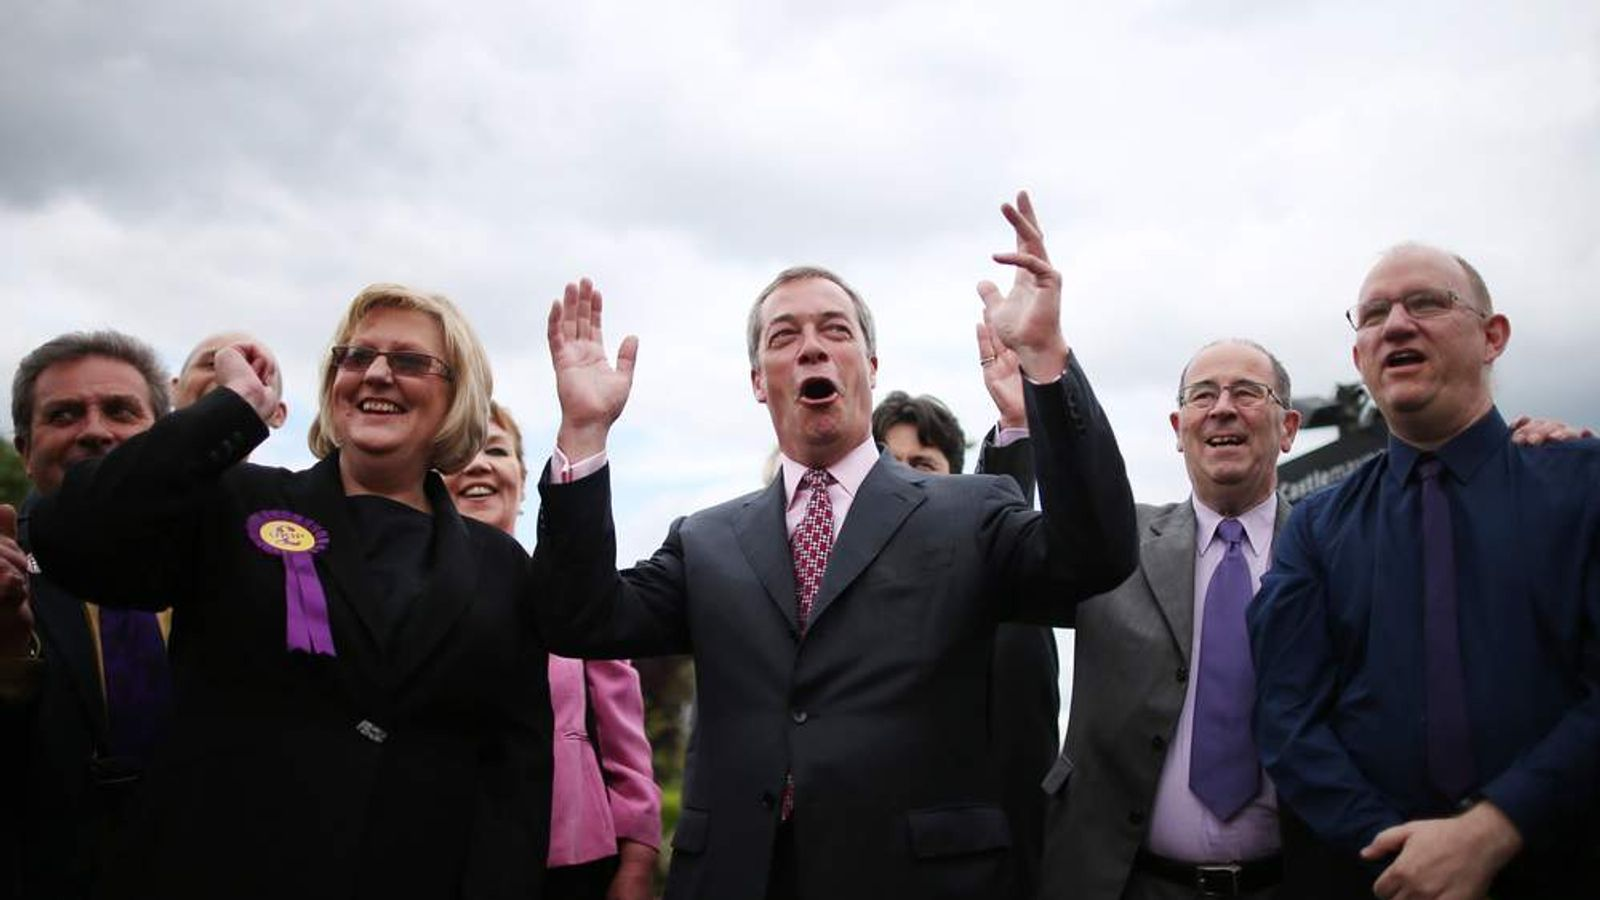 Nigel Farage celebrates after the local election results